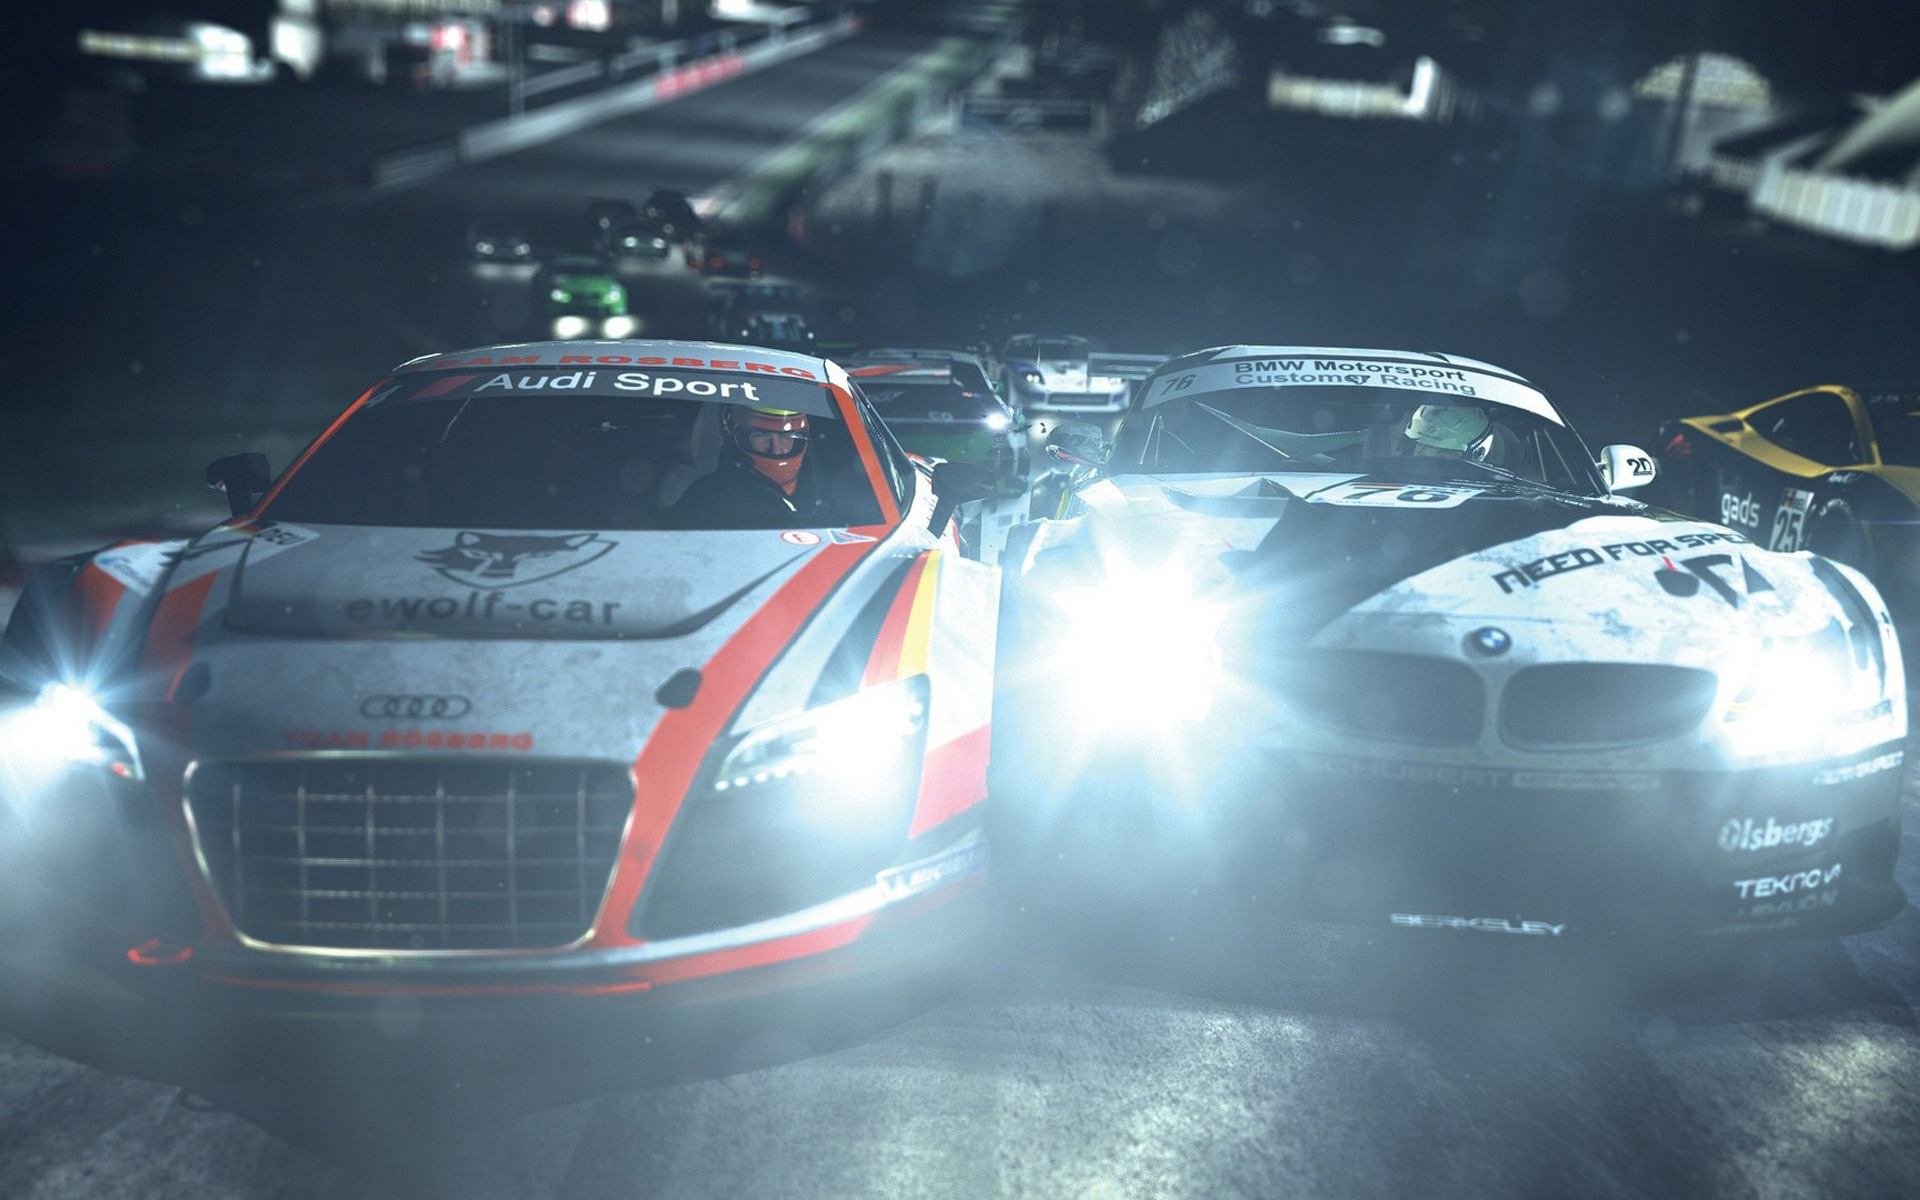 Need for Speed: Shift 2 Unleashed Wallpaper in 1920x1200